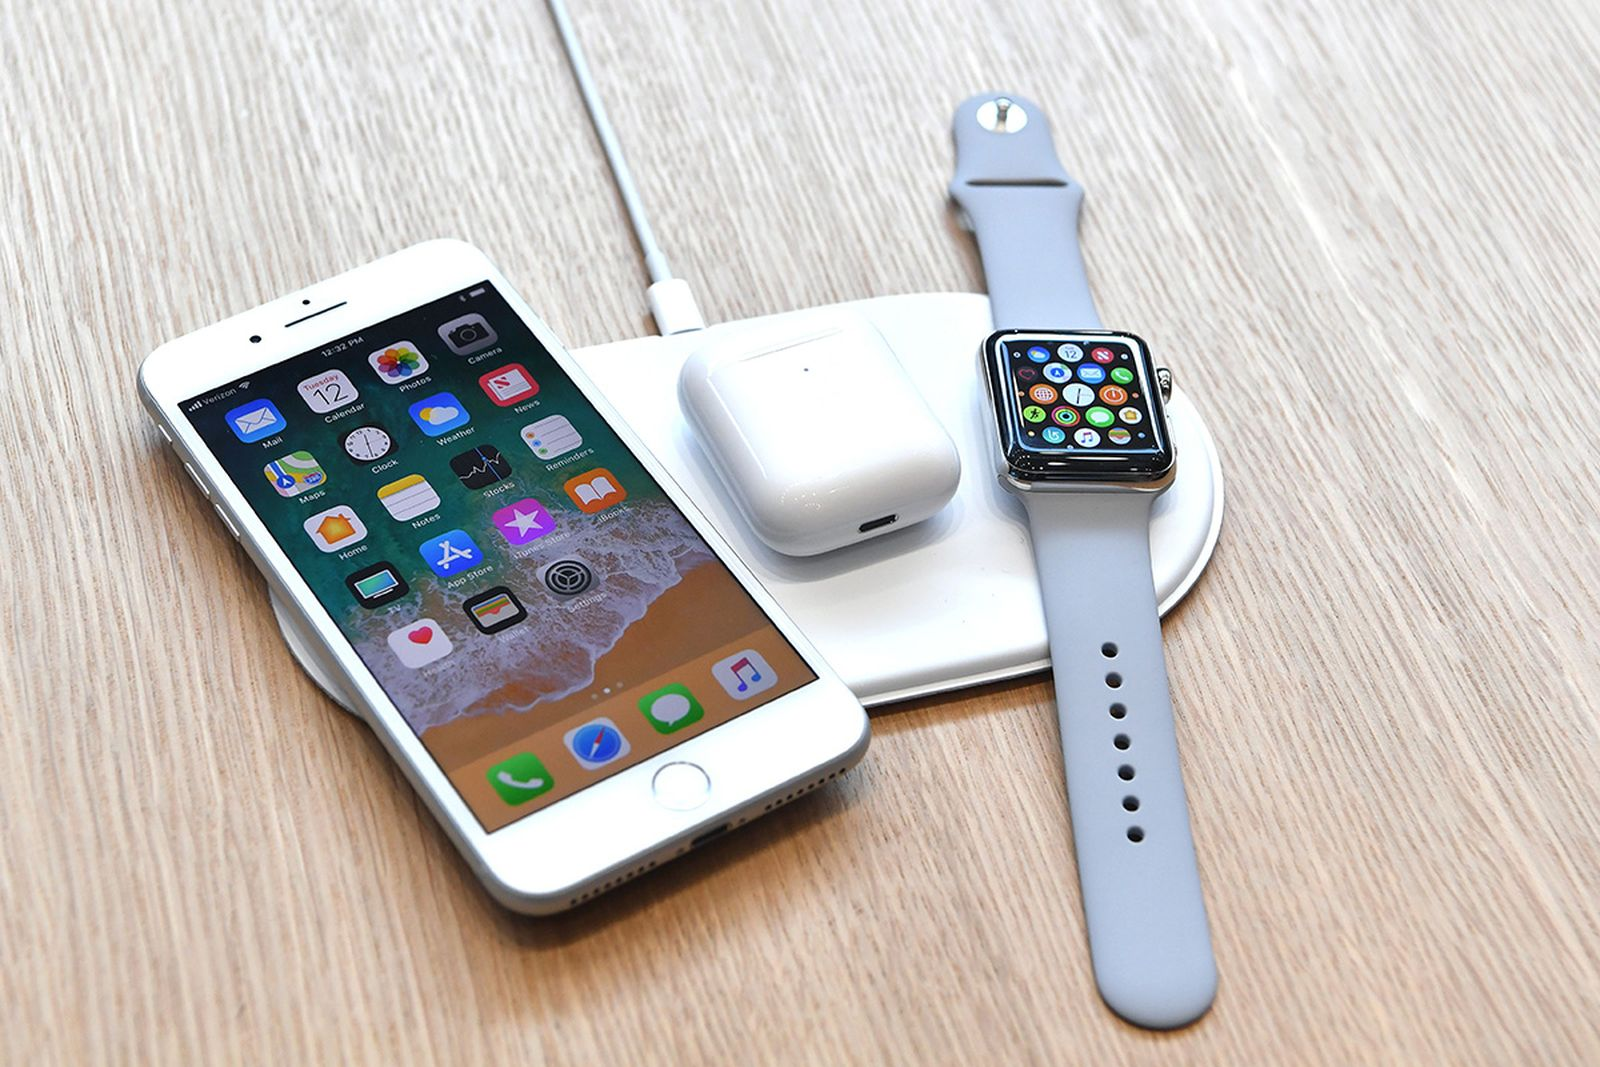 apple airpower mat production rumors